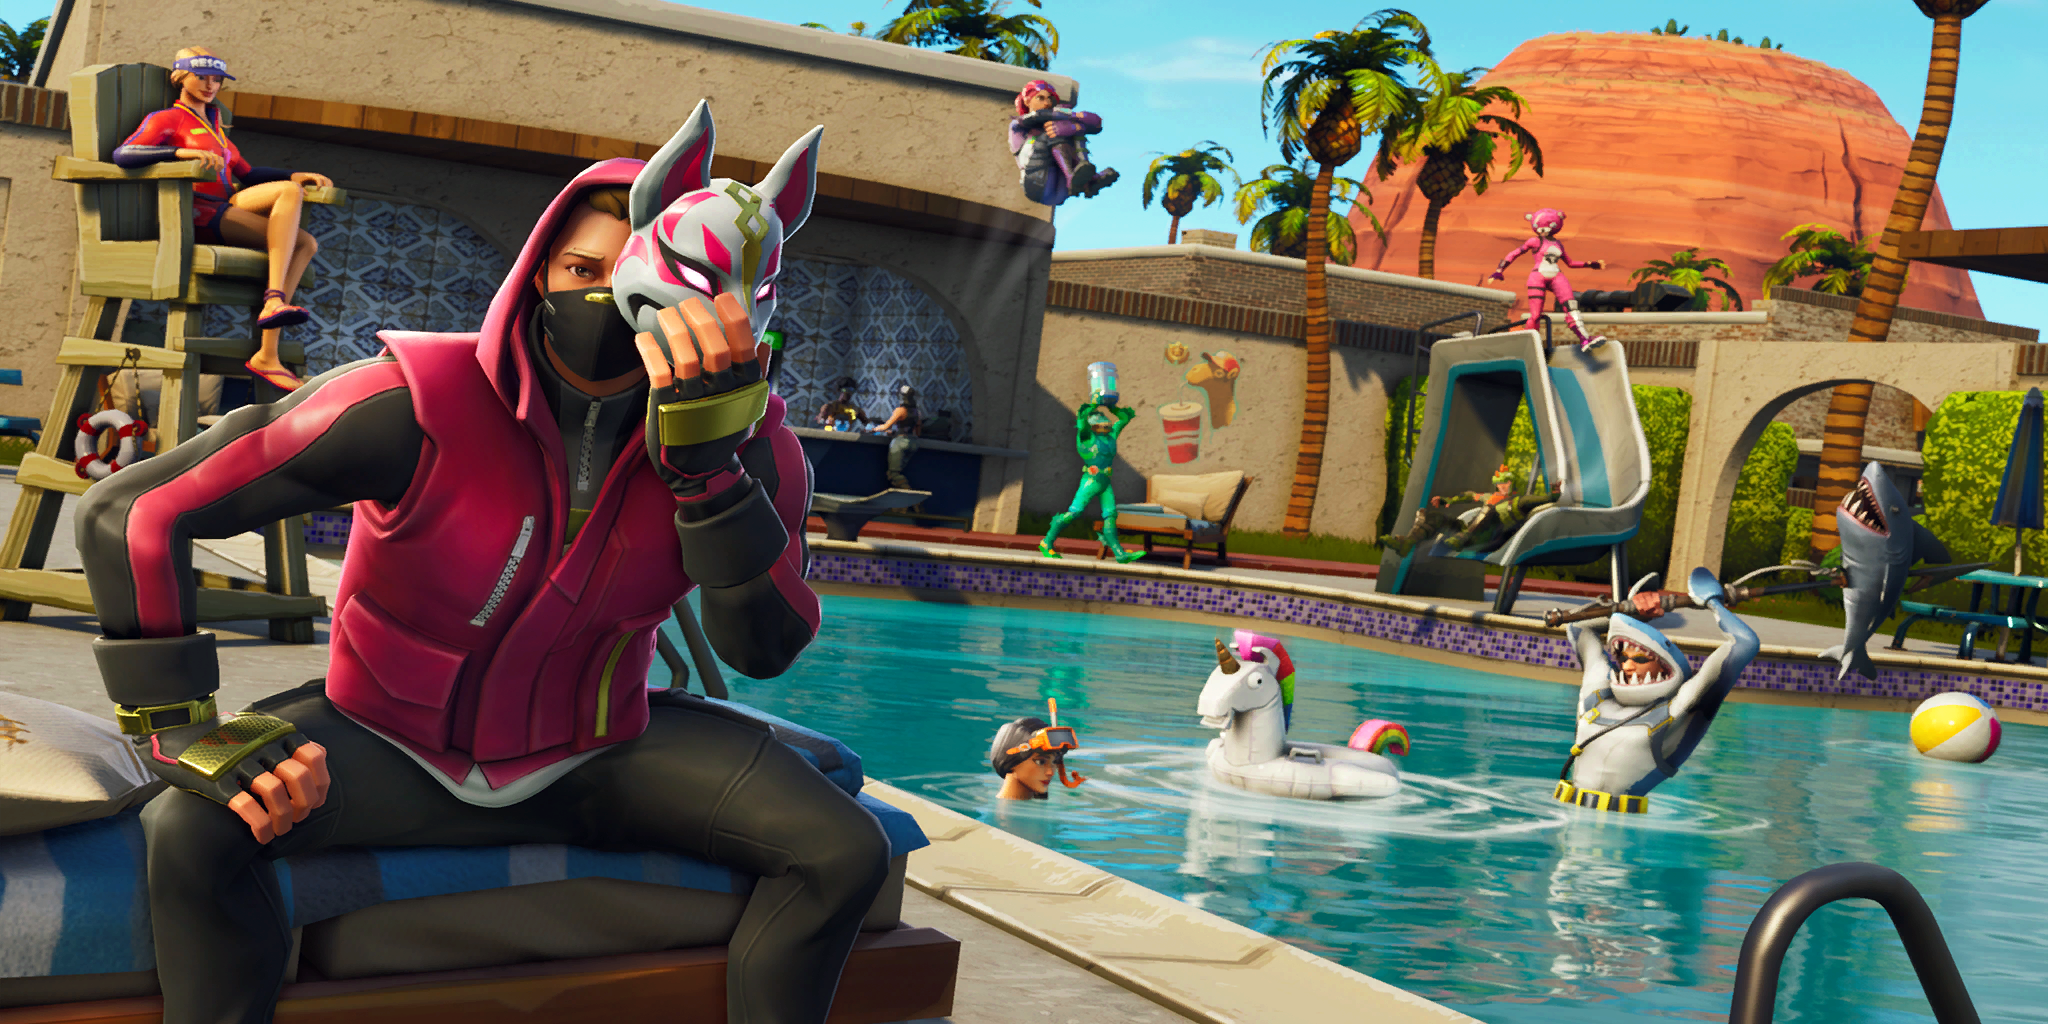 Fortnite Stuck On Loading Screen Mac we found a pool party and decided to jump in. whether we